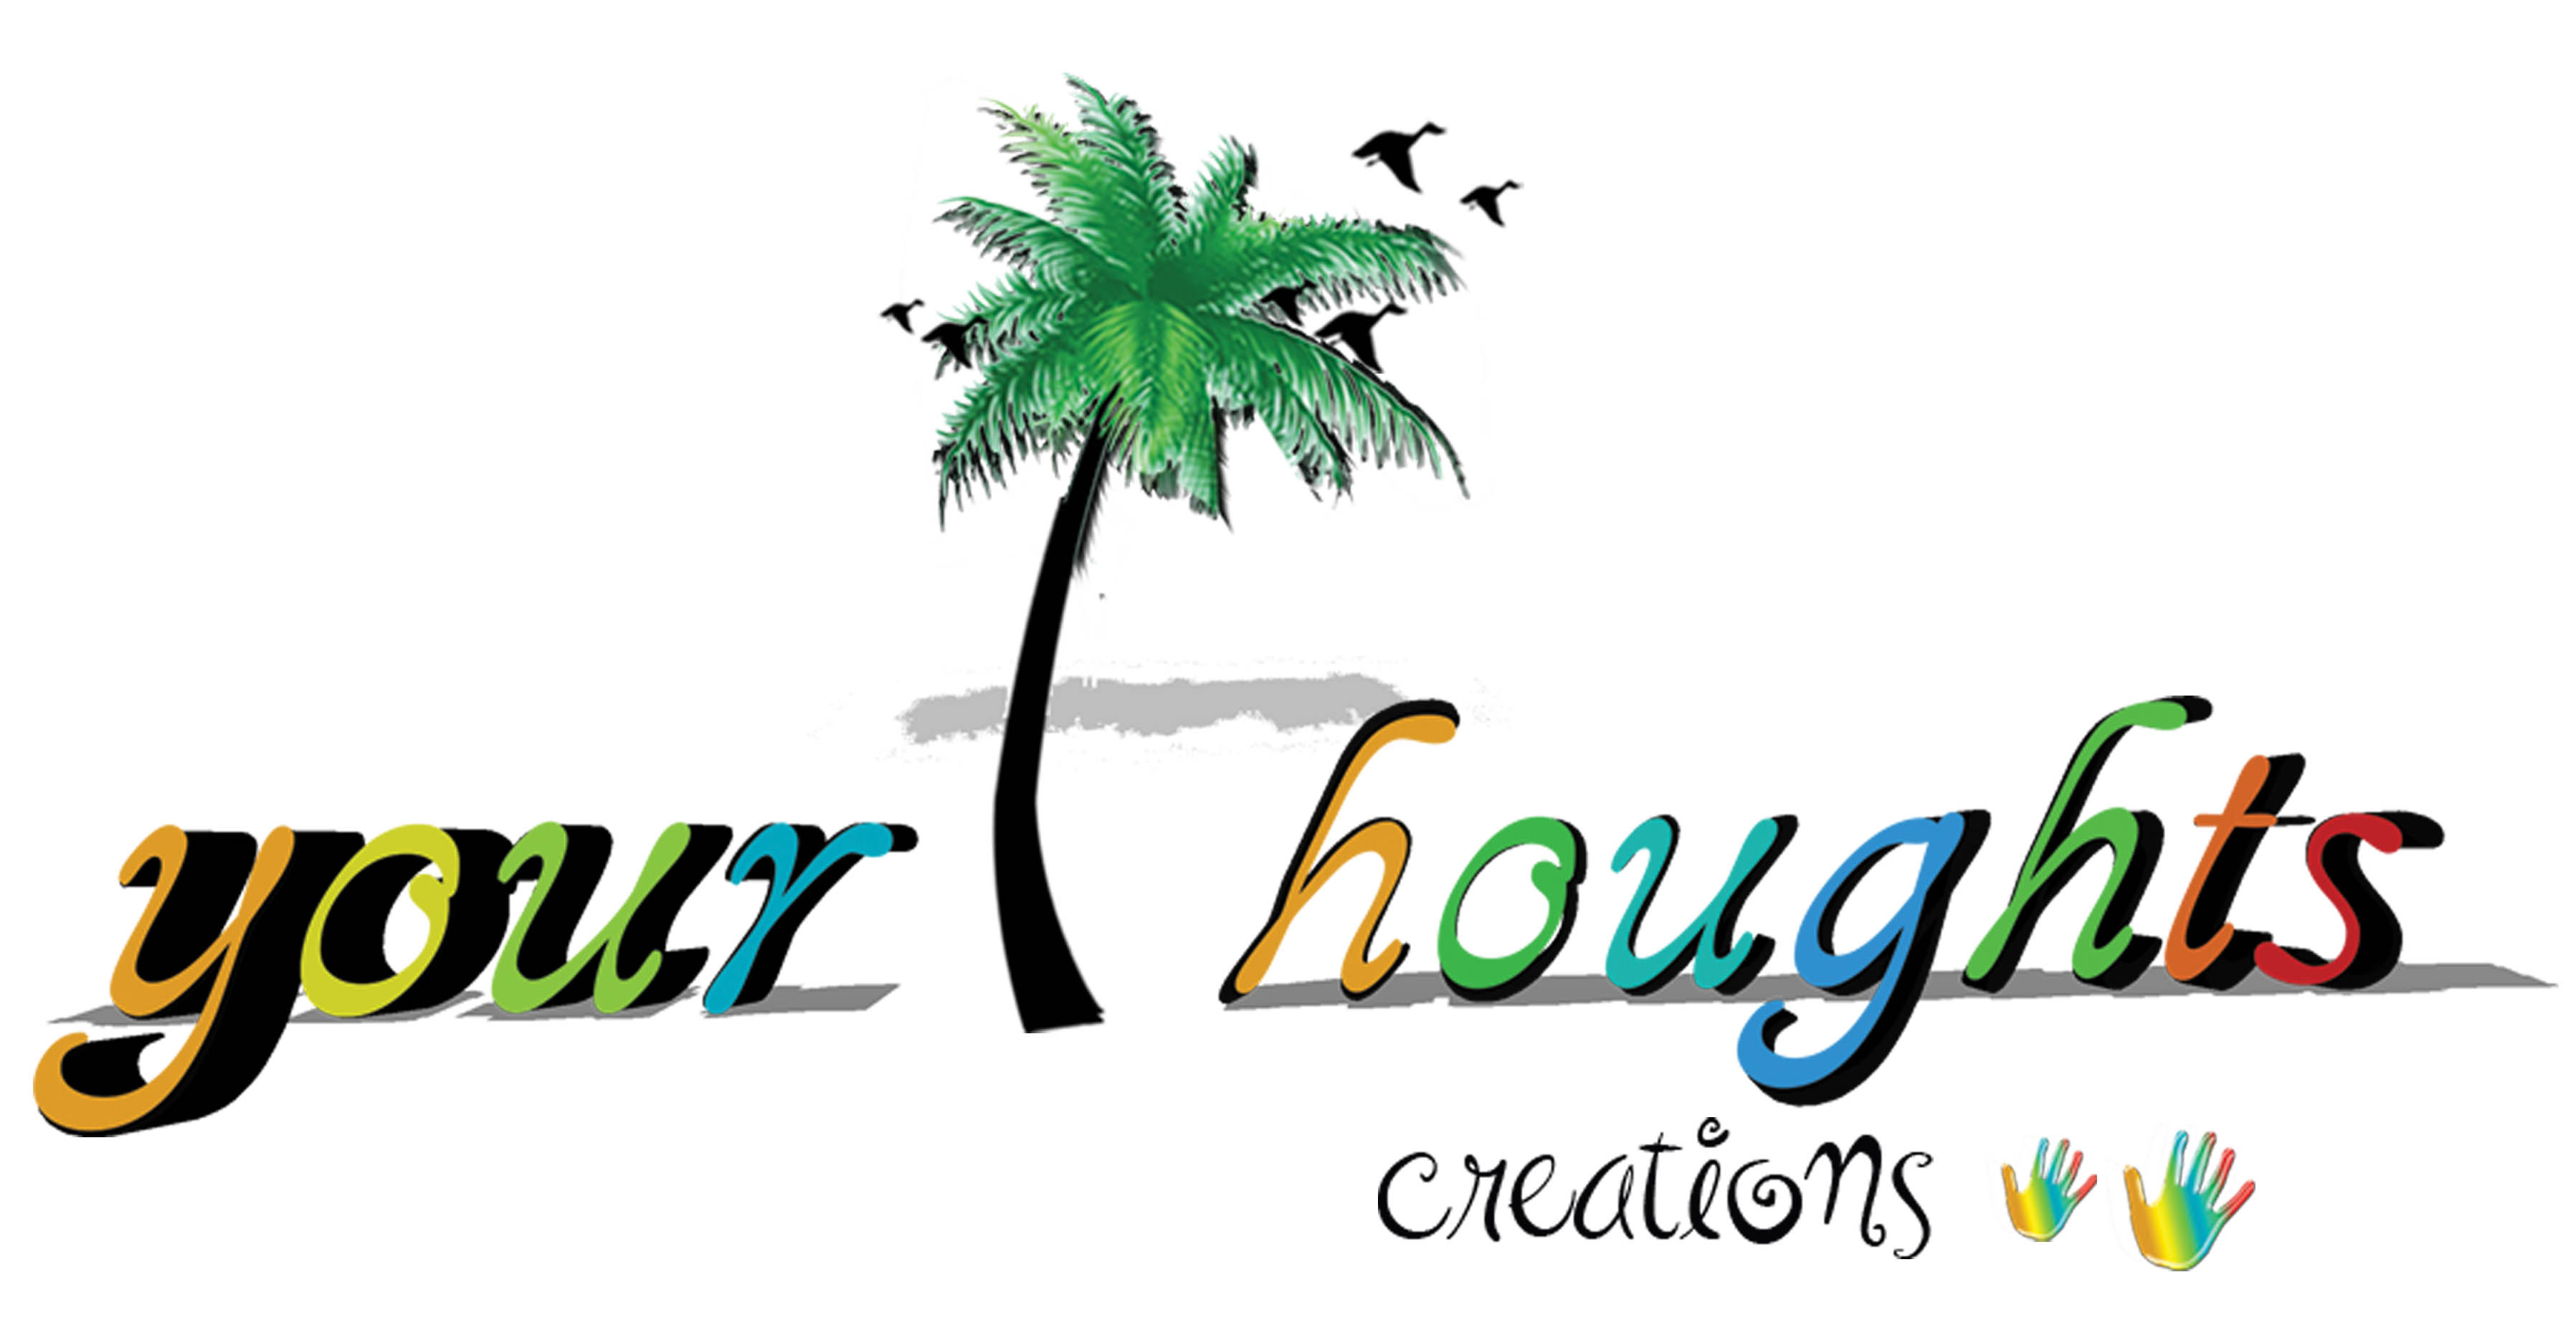 Yourthoughts creations